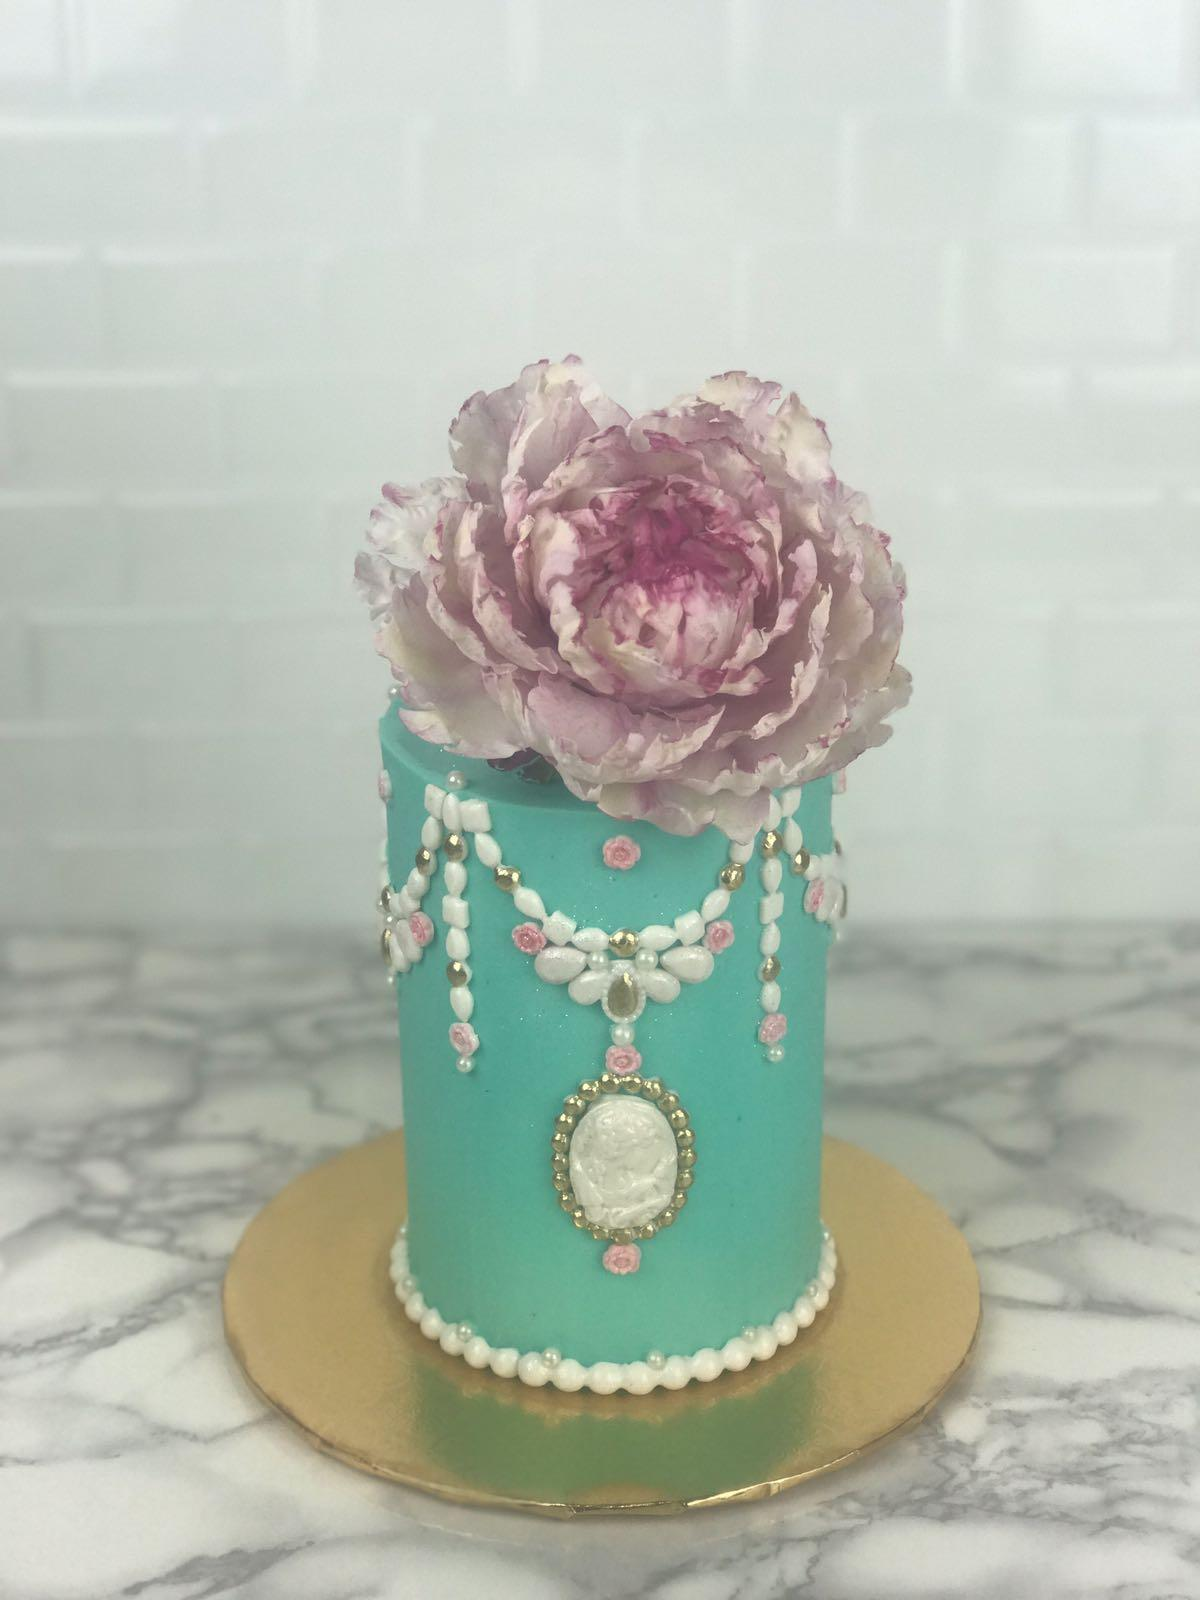 Vintage mini turquoise wedding cake with sugar pearls and flower